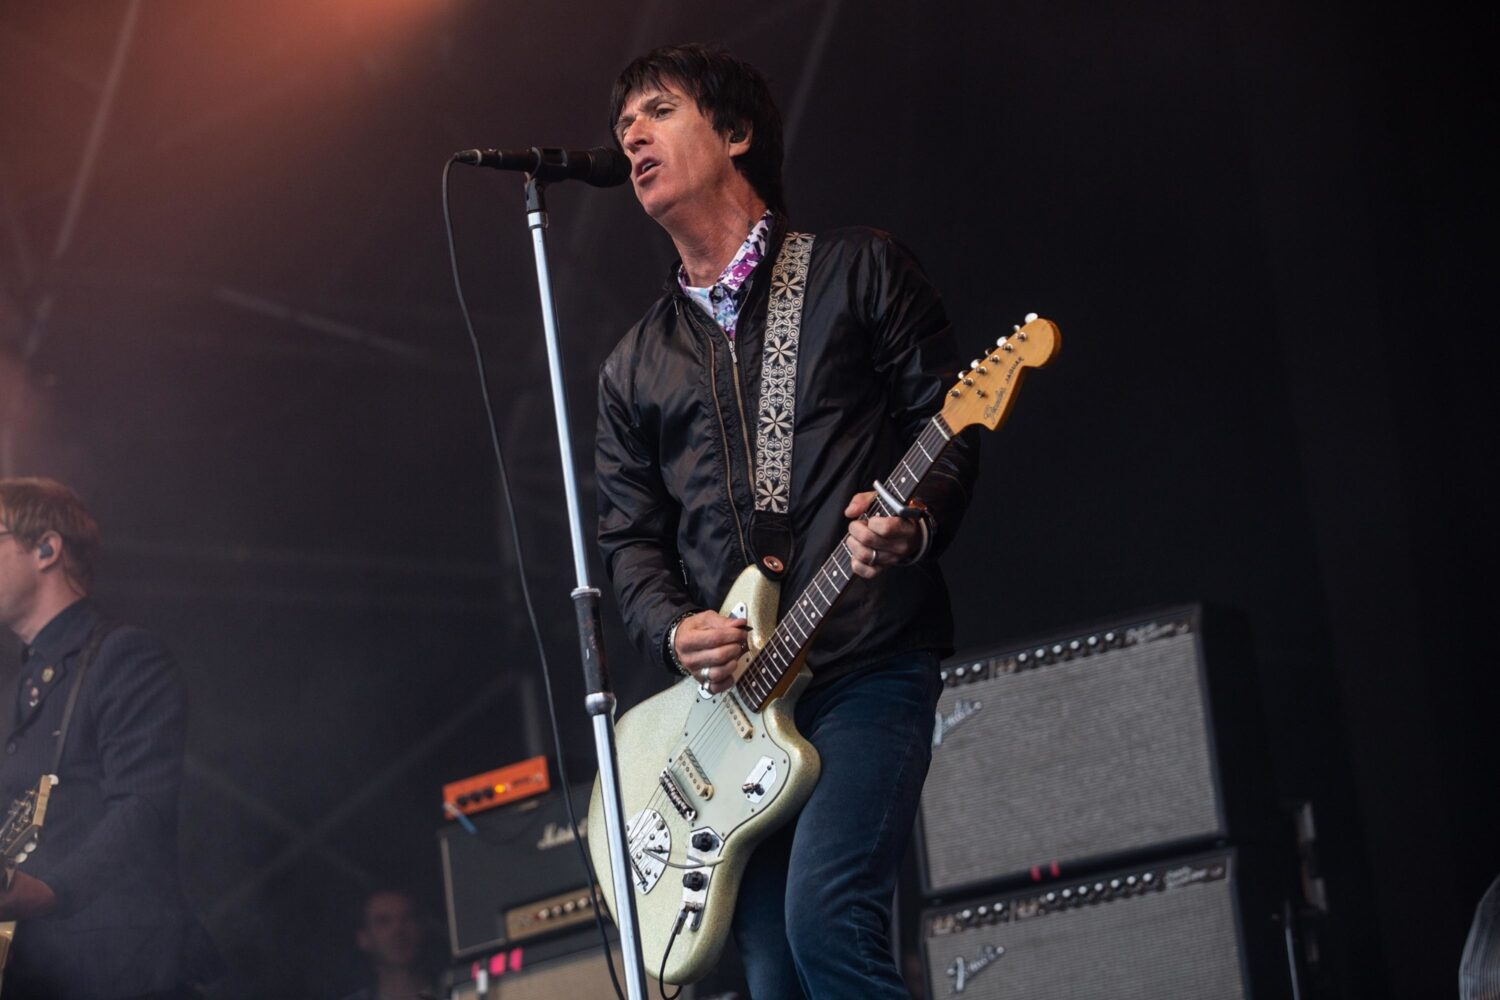 """Johnny Marr releases new track 'The Bright Parade': """"If you're brave enough, you can go anywhere you want"""""""